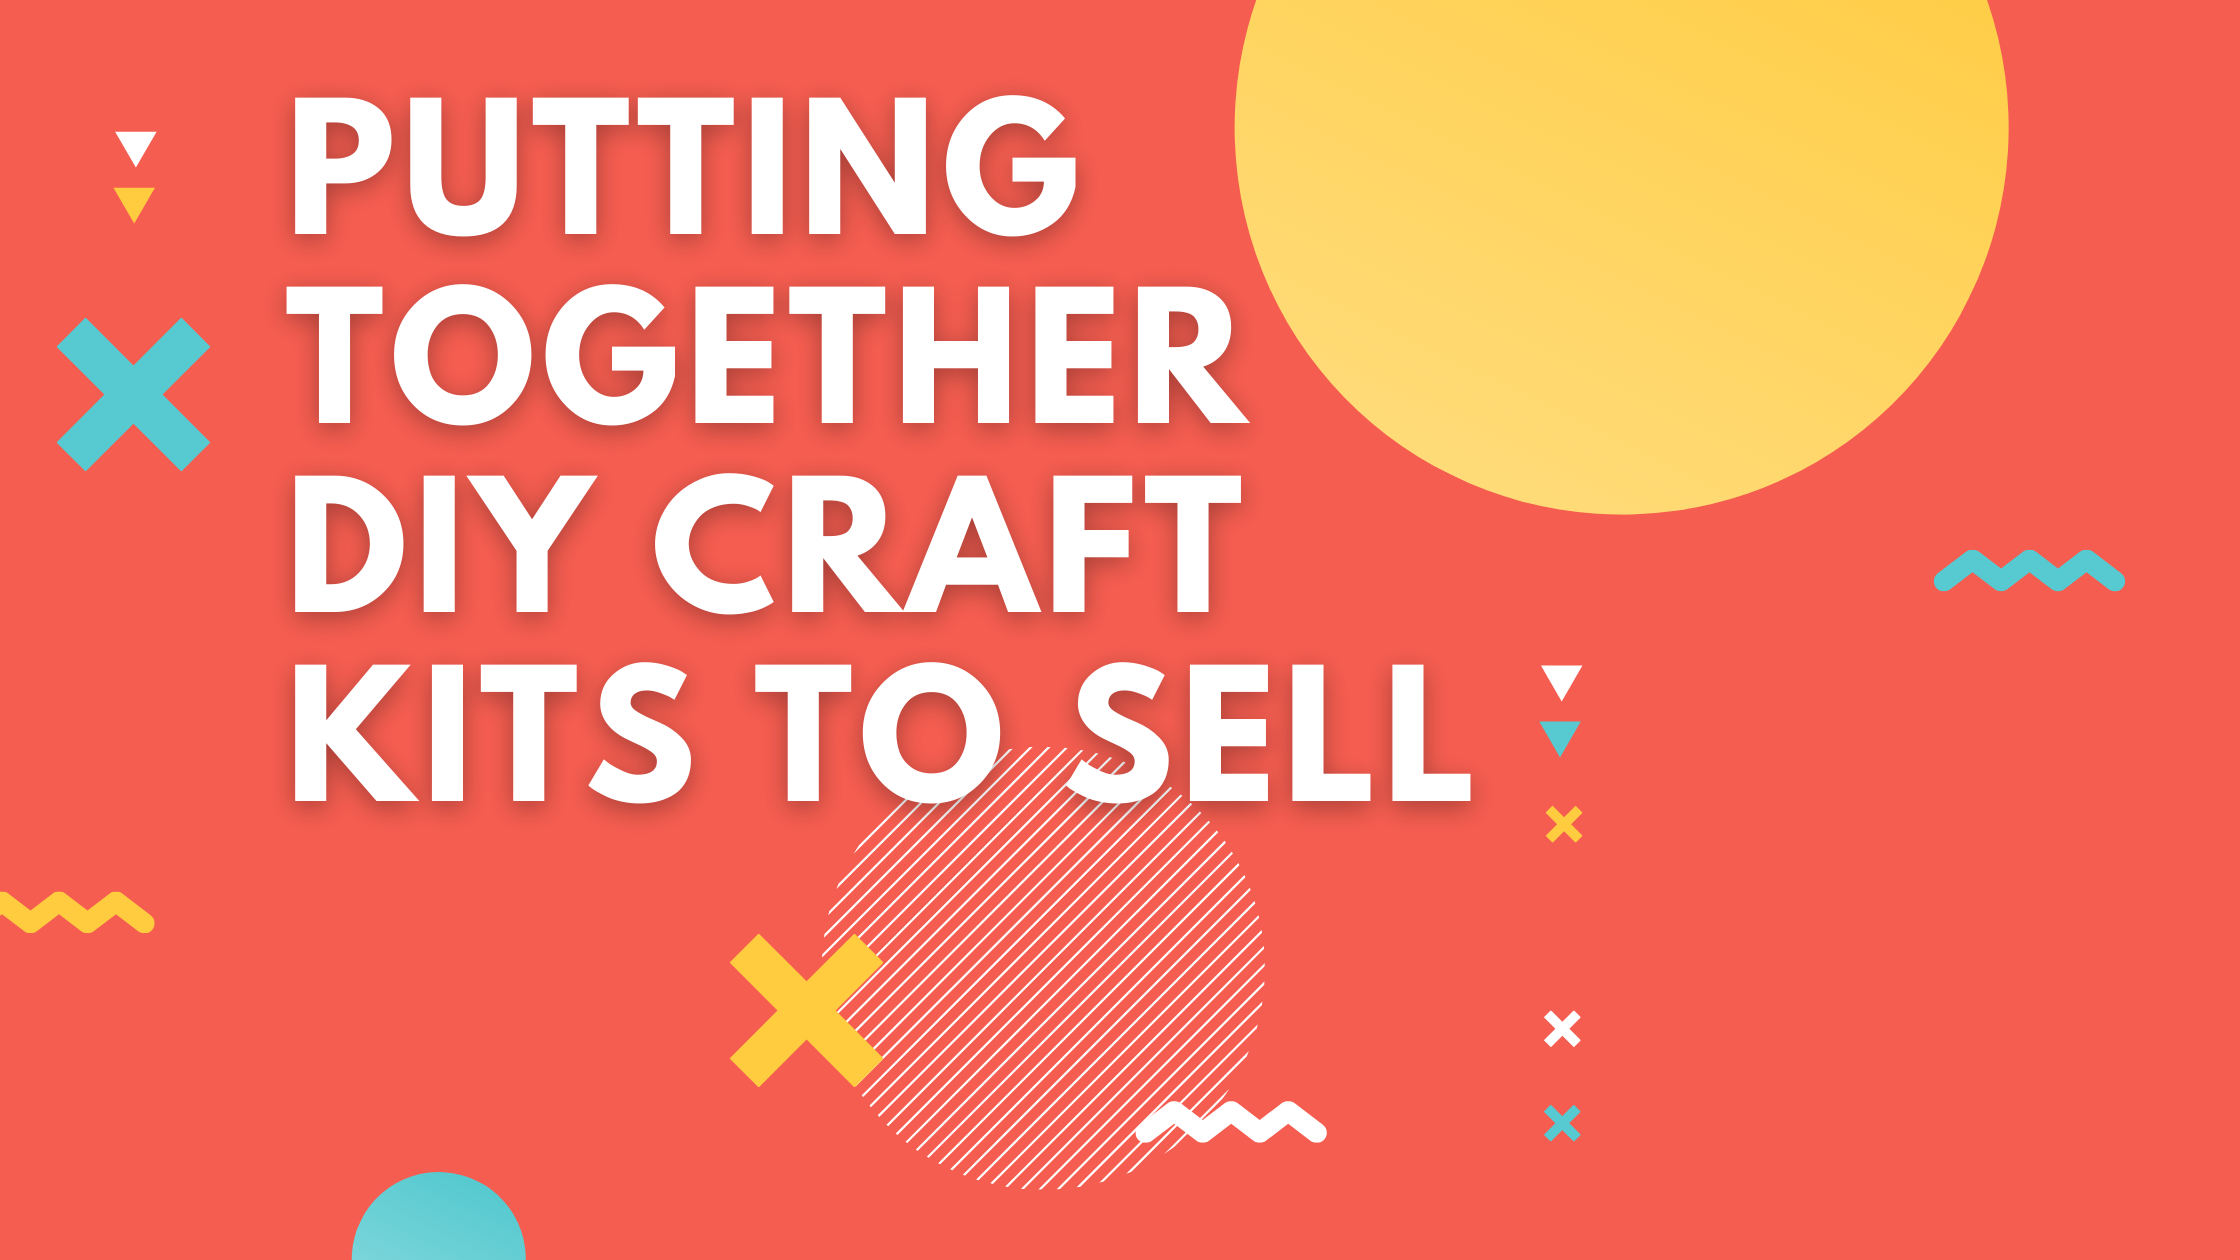 Putting Together DIY Craft Kits to Sell